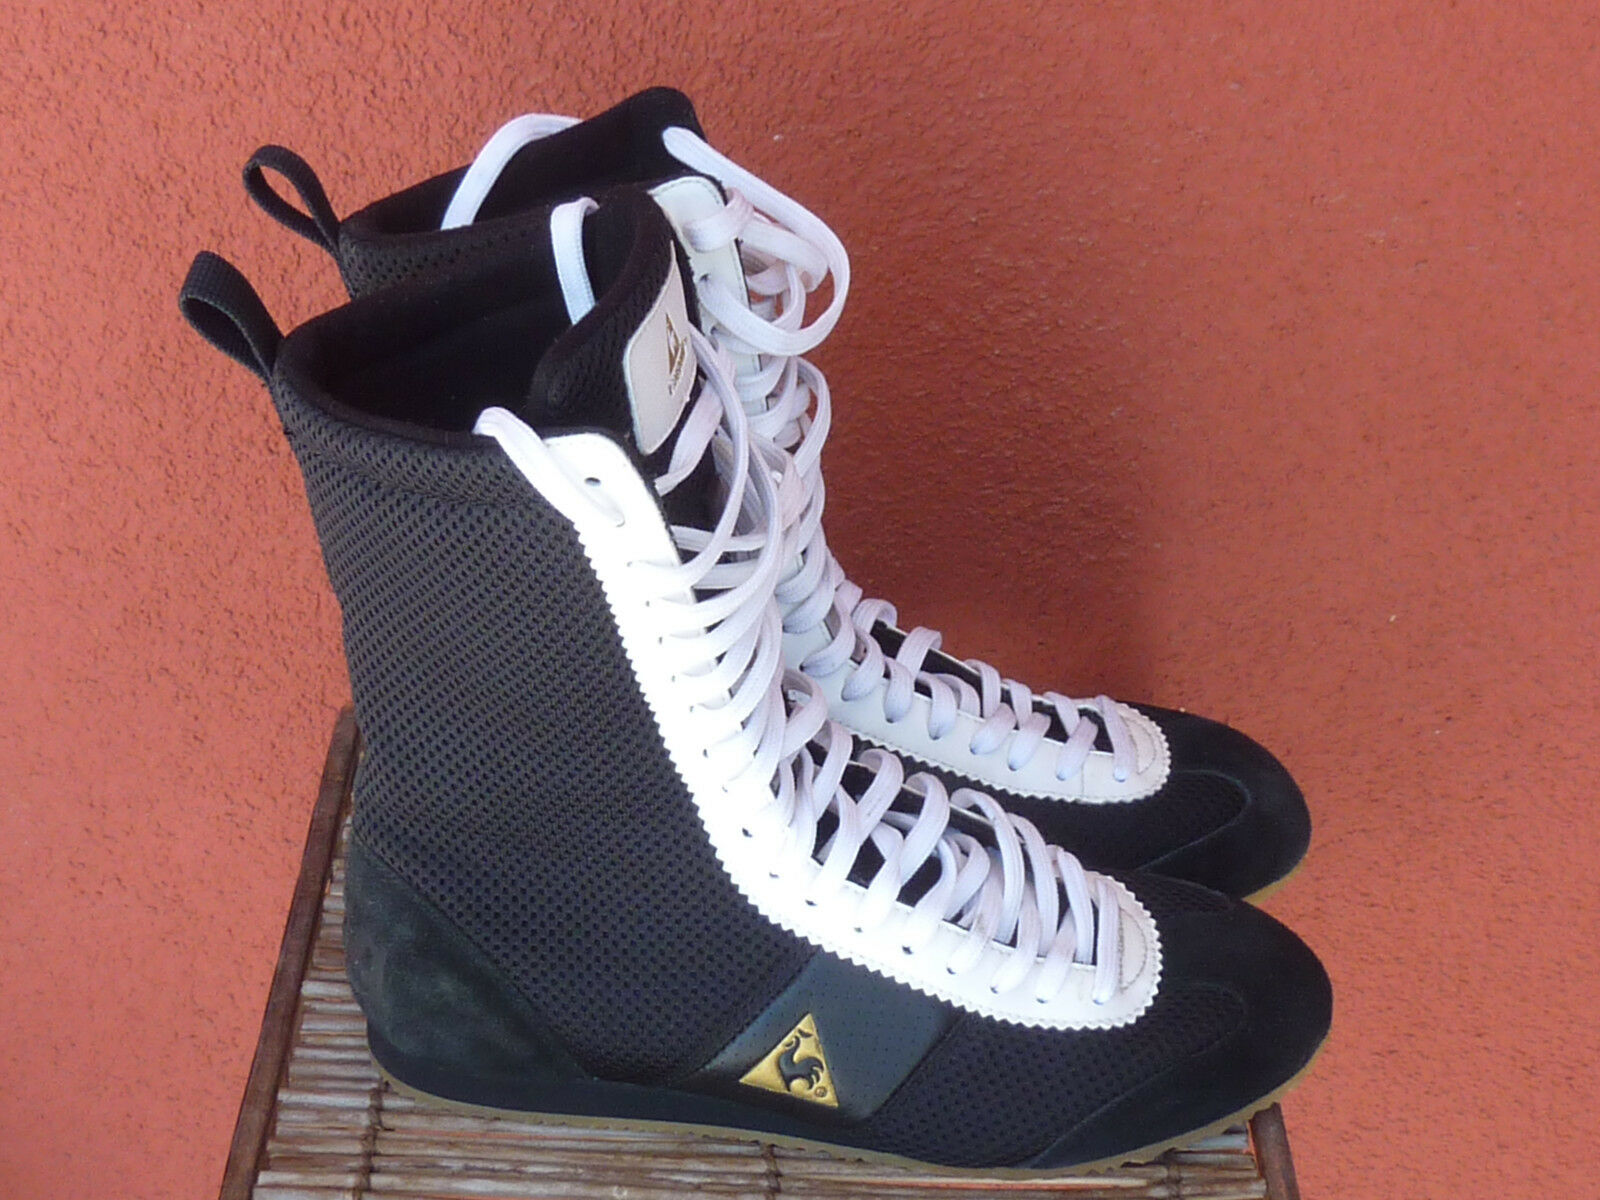 CHAUSSURE BASKET PUMA WALLIS HIGH taille 38 US 5.5 JP 23.5 montante BLACK best-selling model of the brand